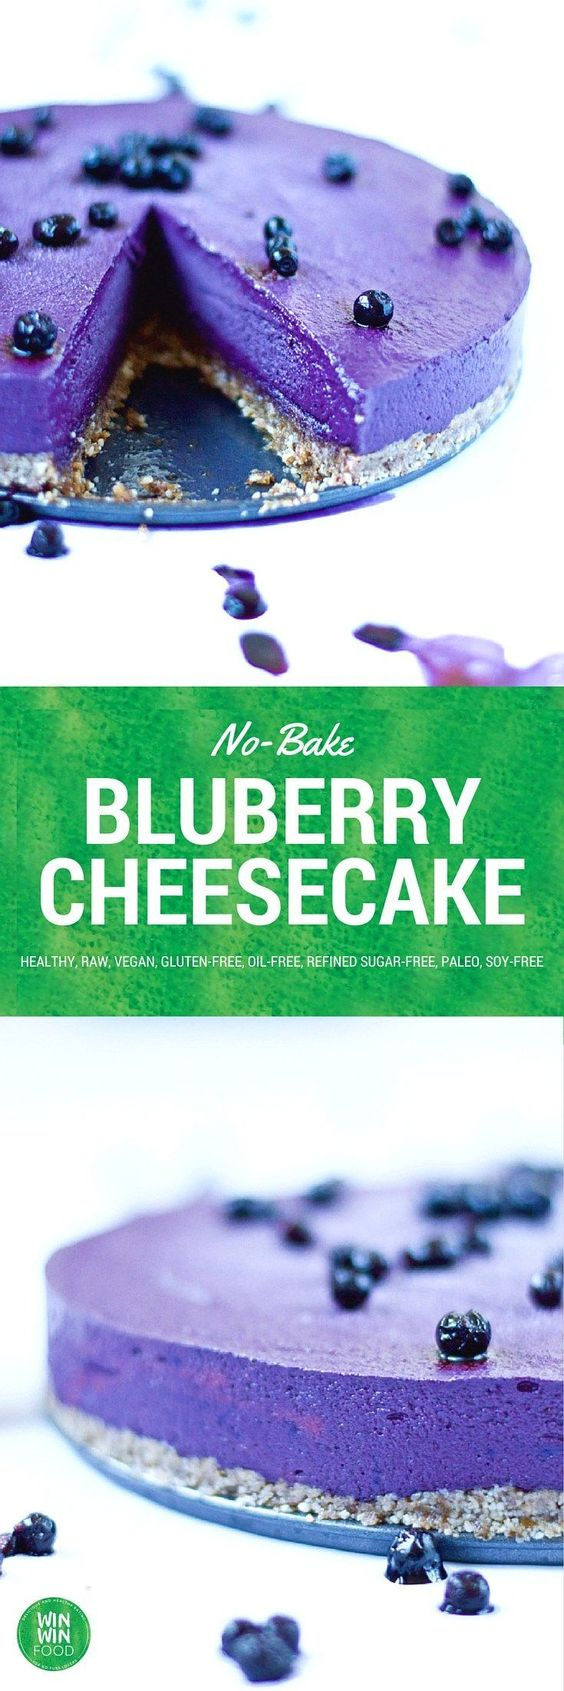 no-bake blueberry cheesecake - paleo, vegan, gluten free